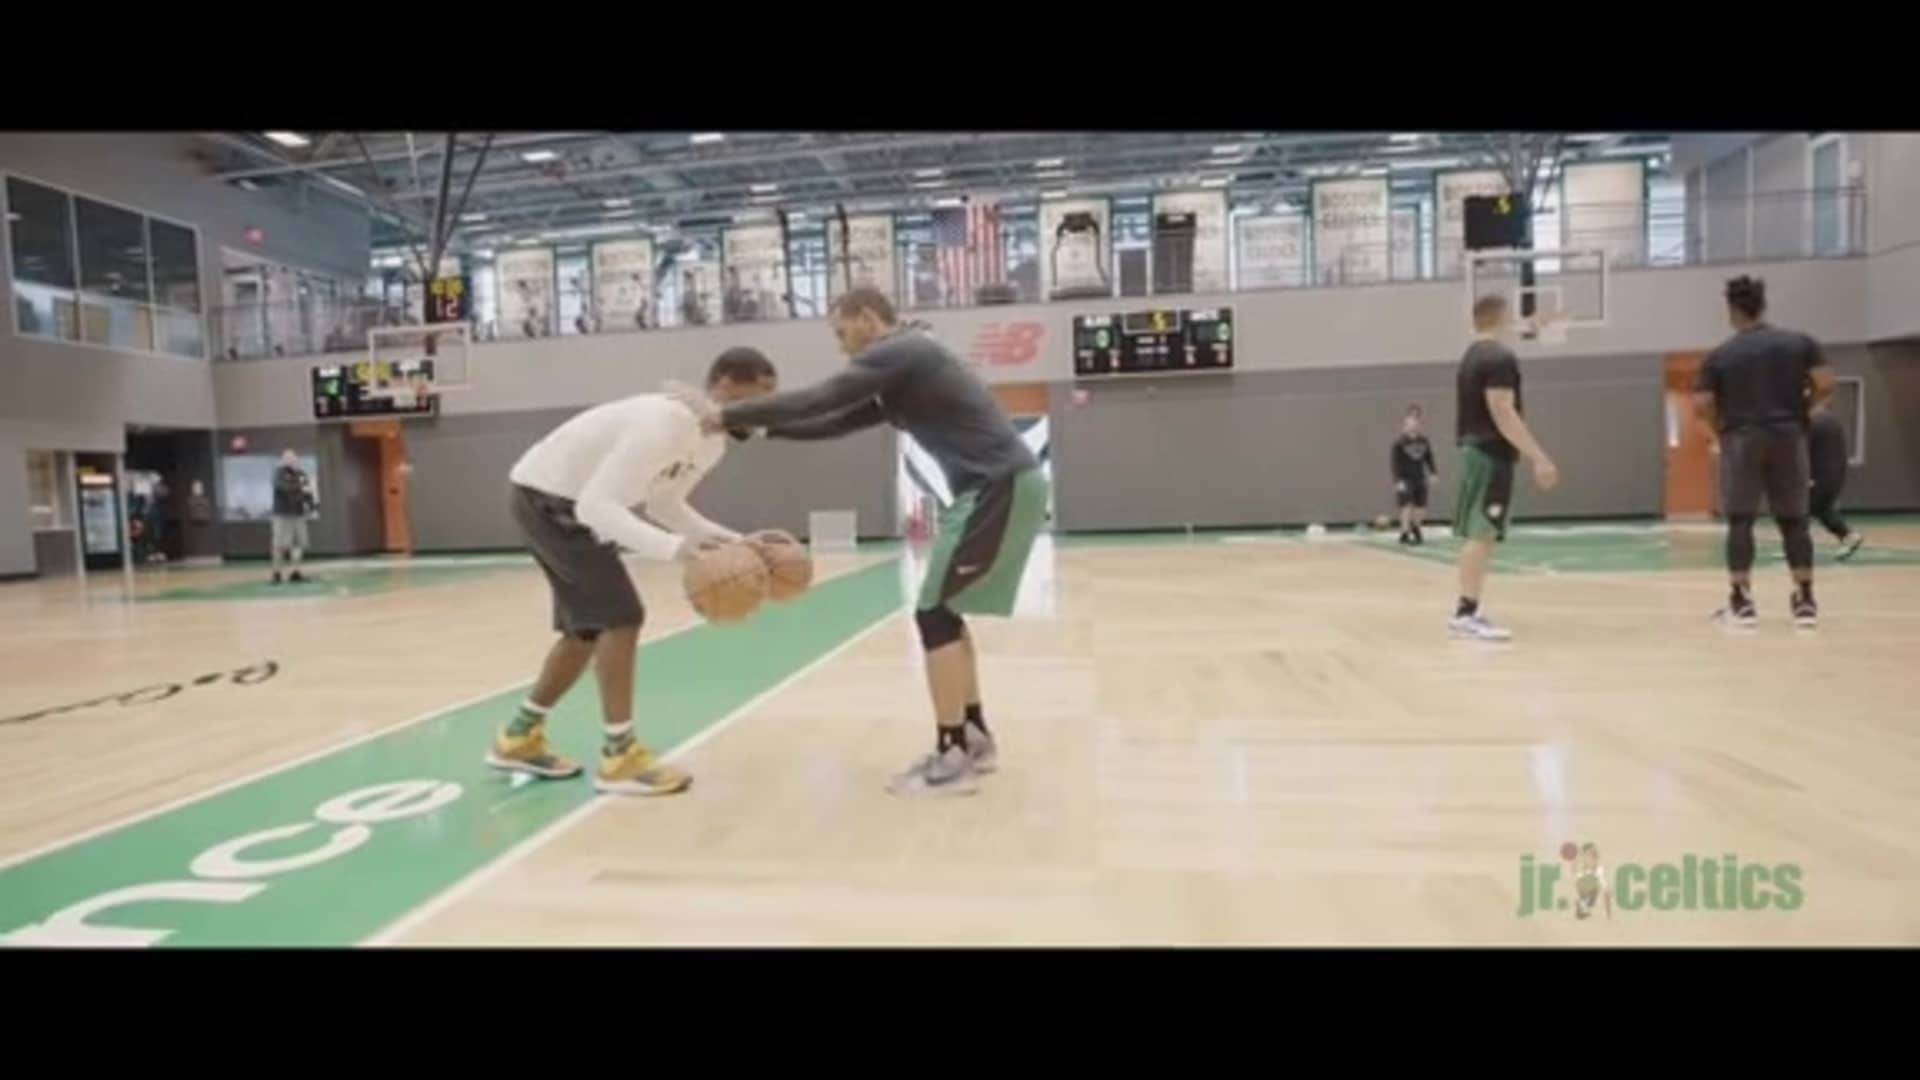 Jr. Celtics Player Tip - Changing Speed with Brad Wanamaker